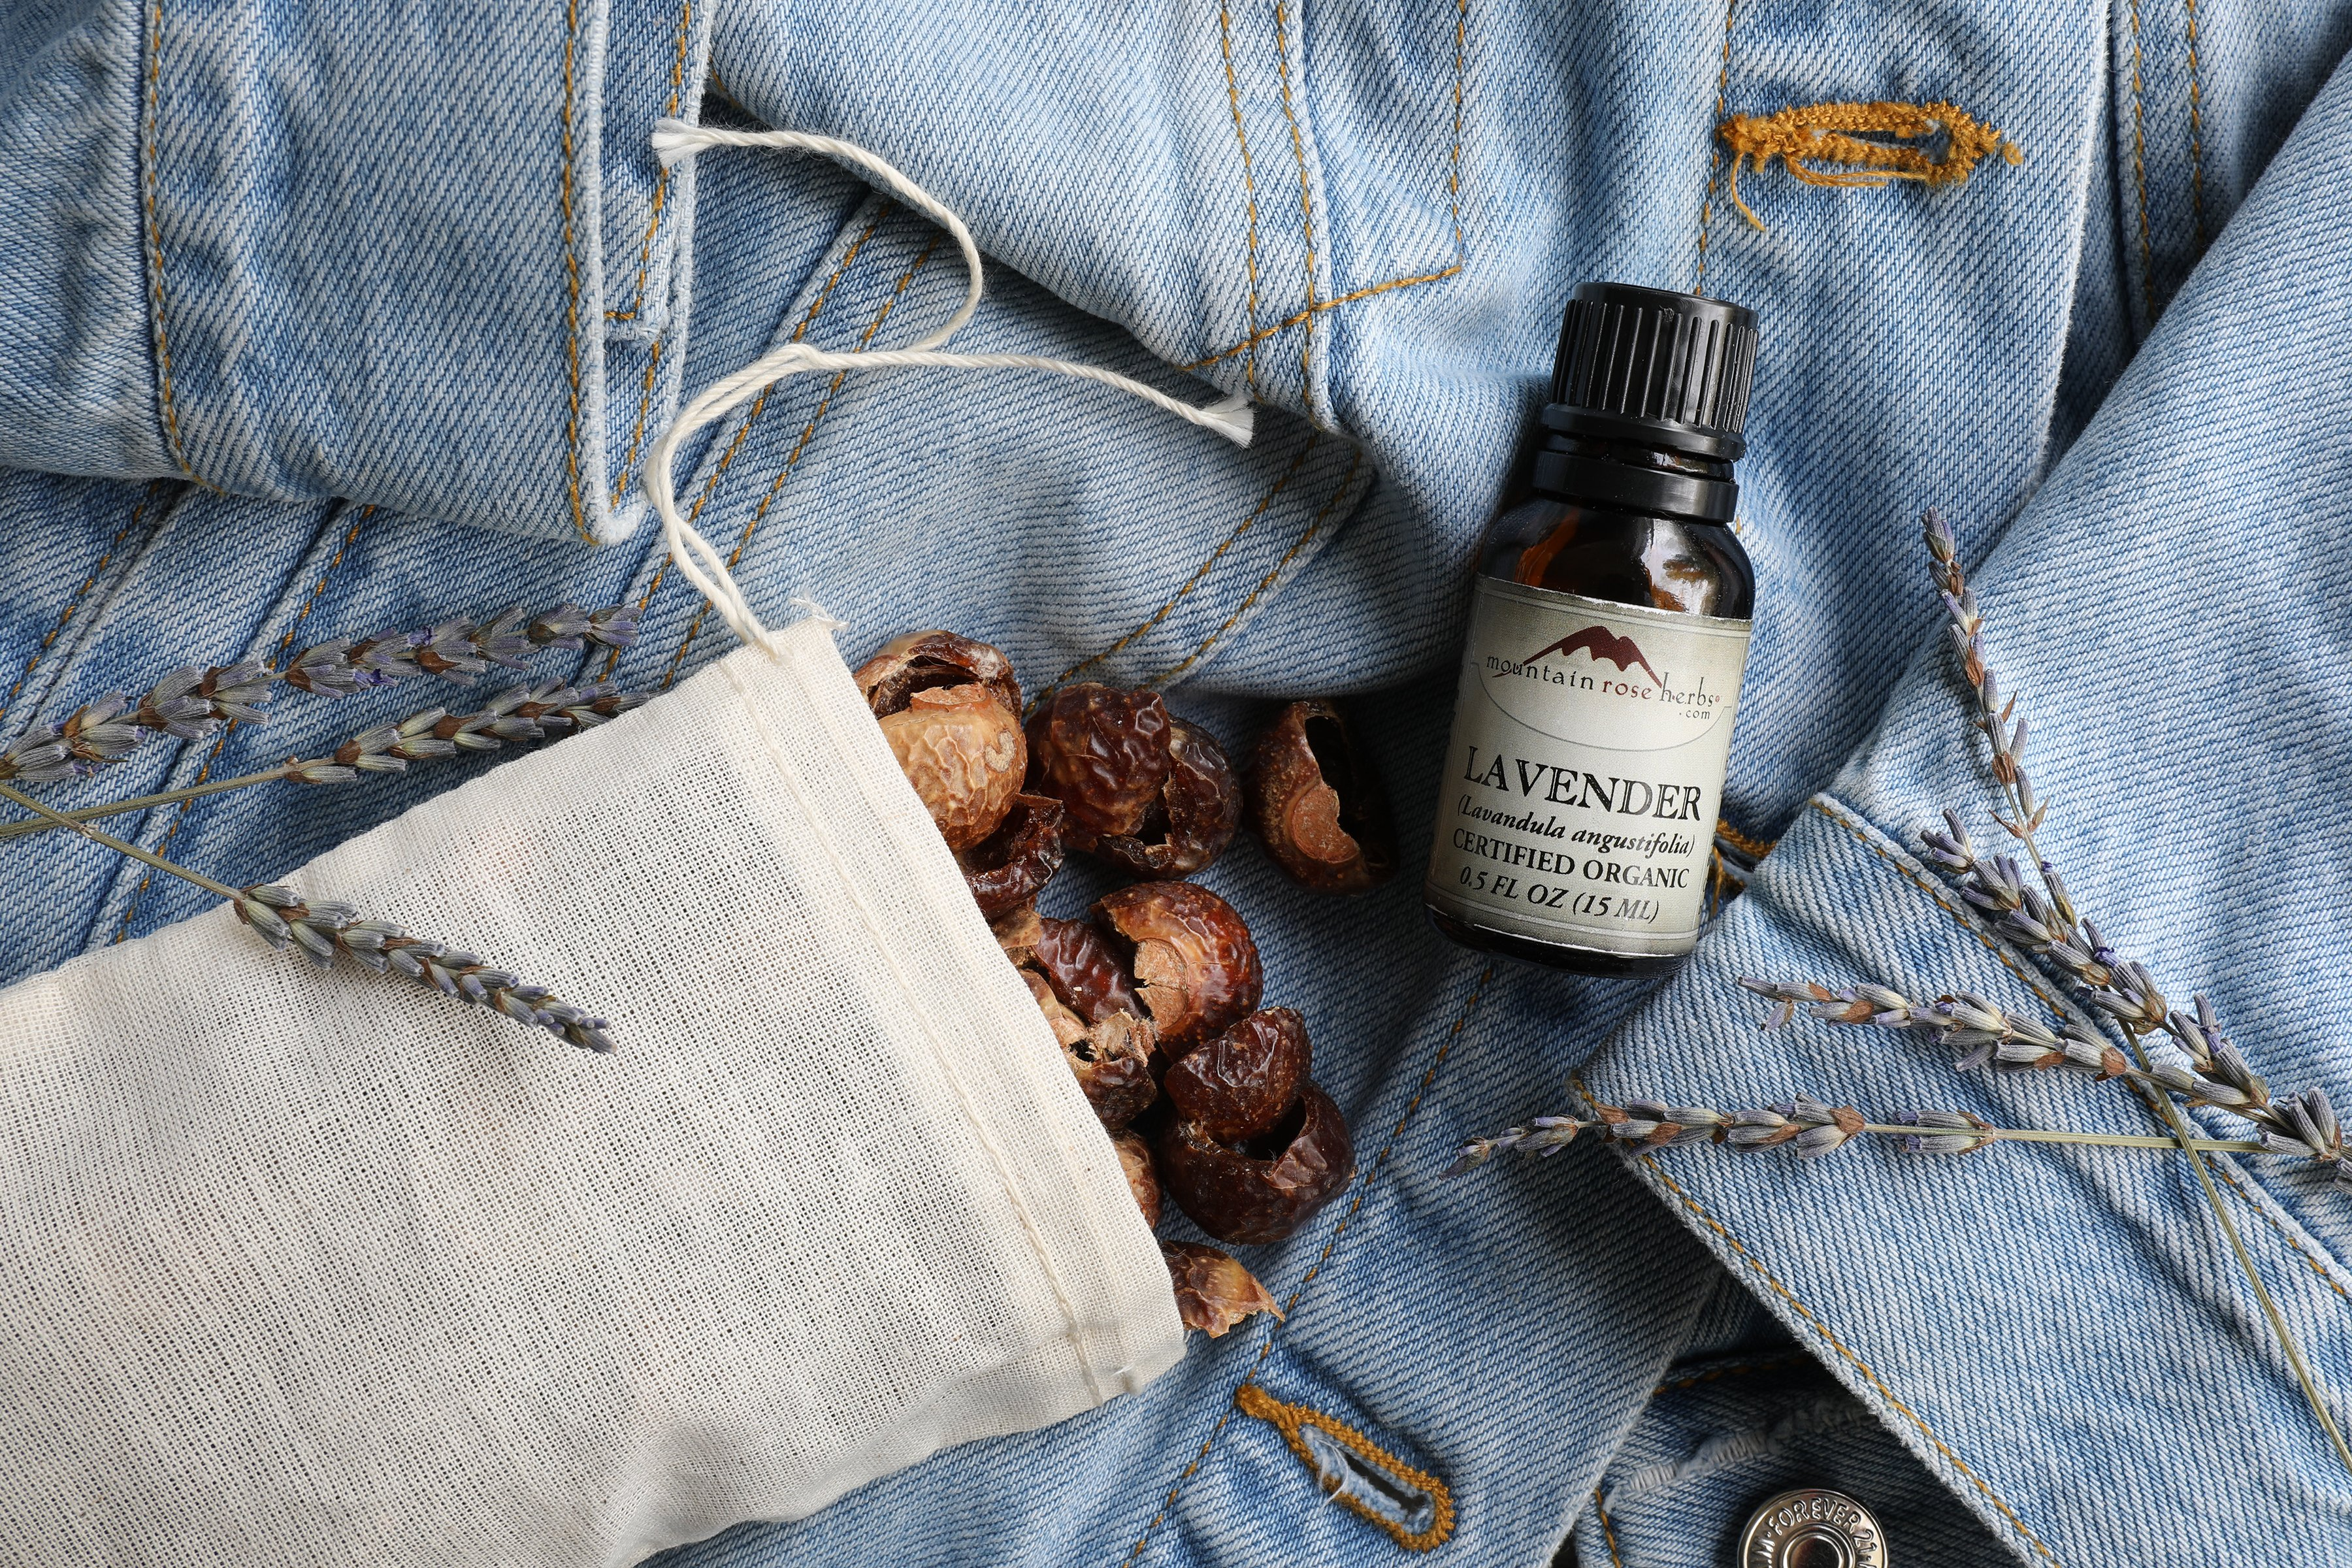 Bag of soap nuts spilling out of cotton bag with bottle of essential oil sitting on denim fabric.